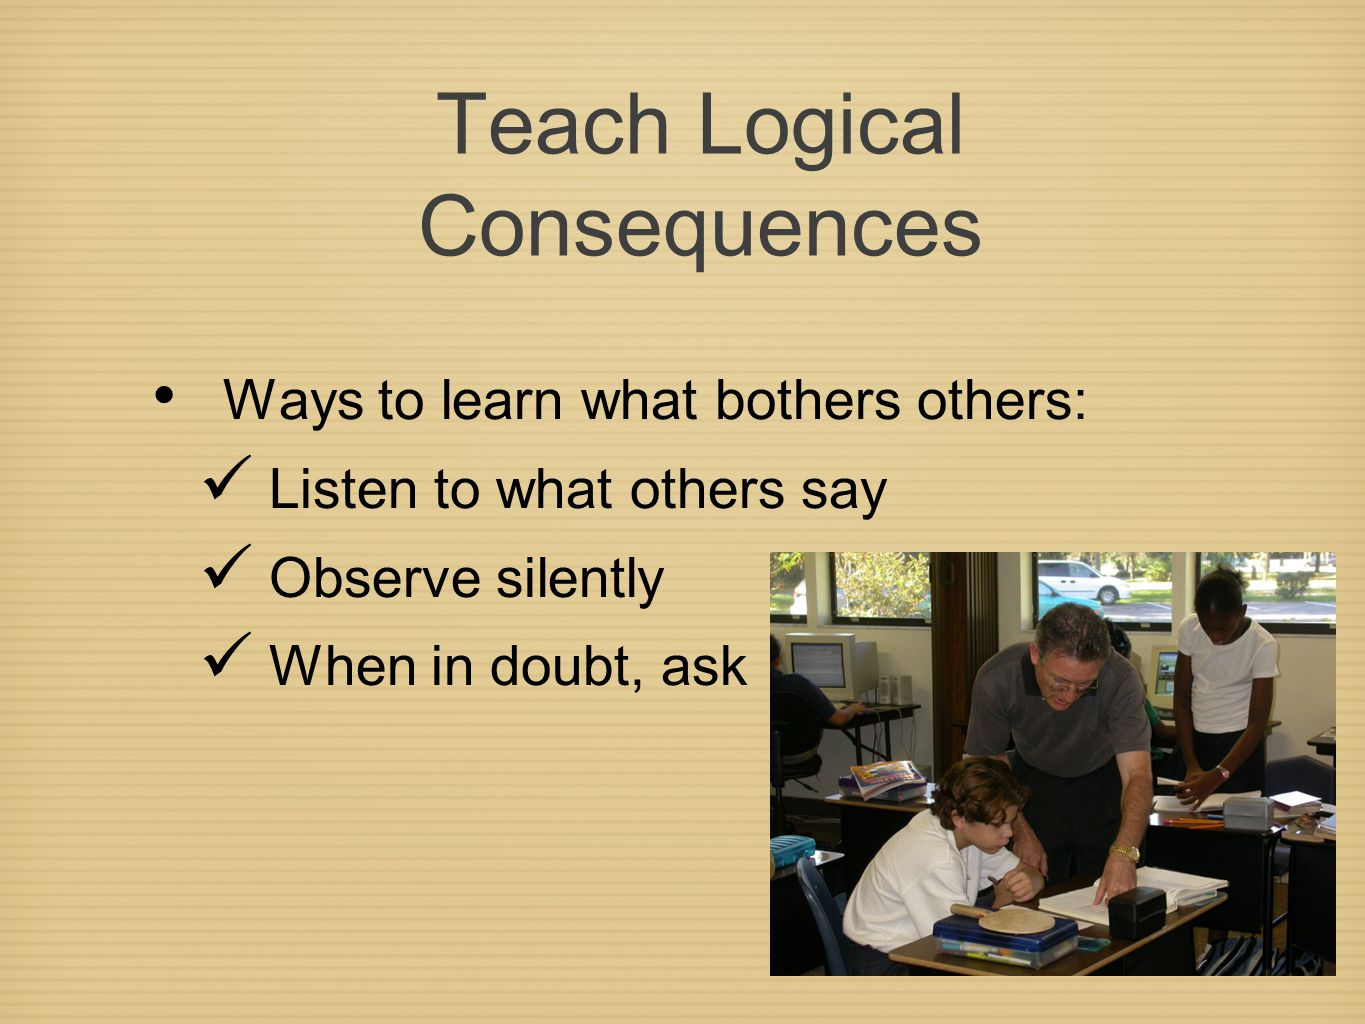 Teach Logical Consequences Ways to learn what bothers others: Listen to what others say Observe silently When in doubt, ask